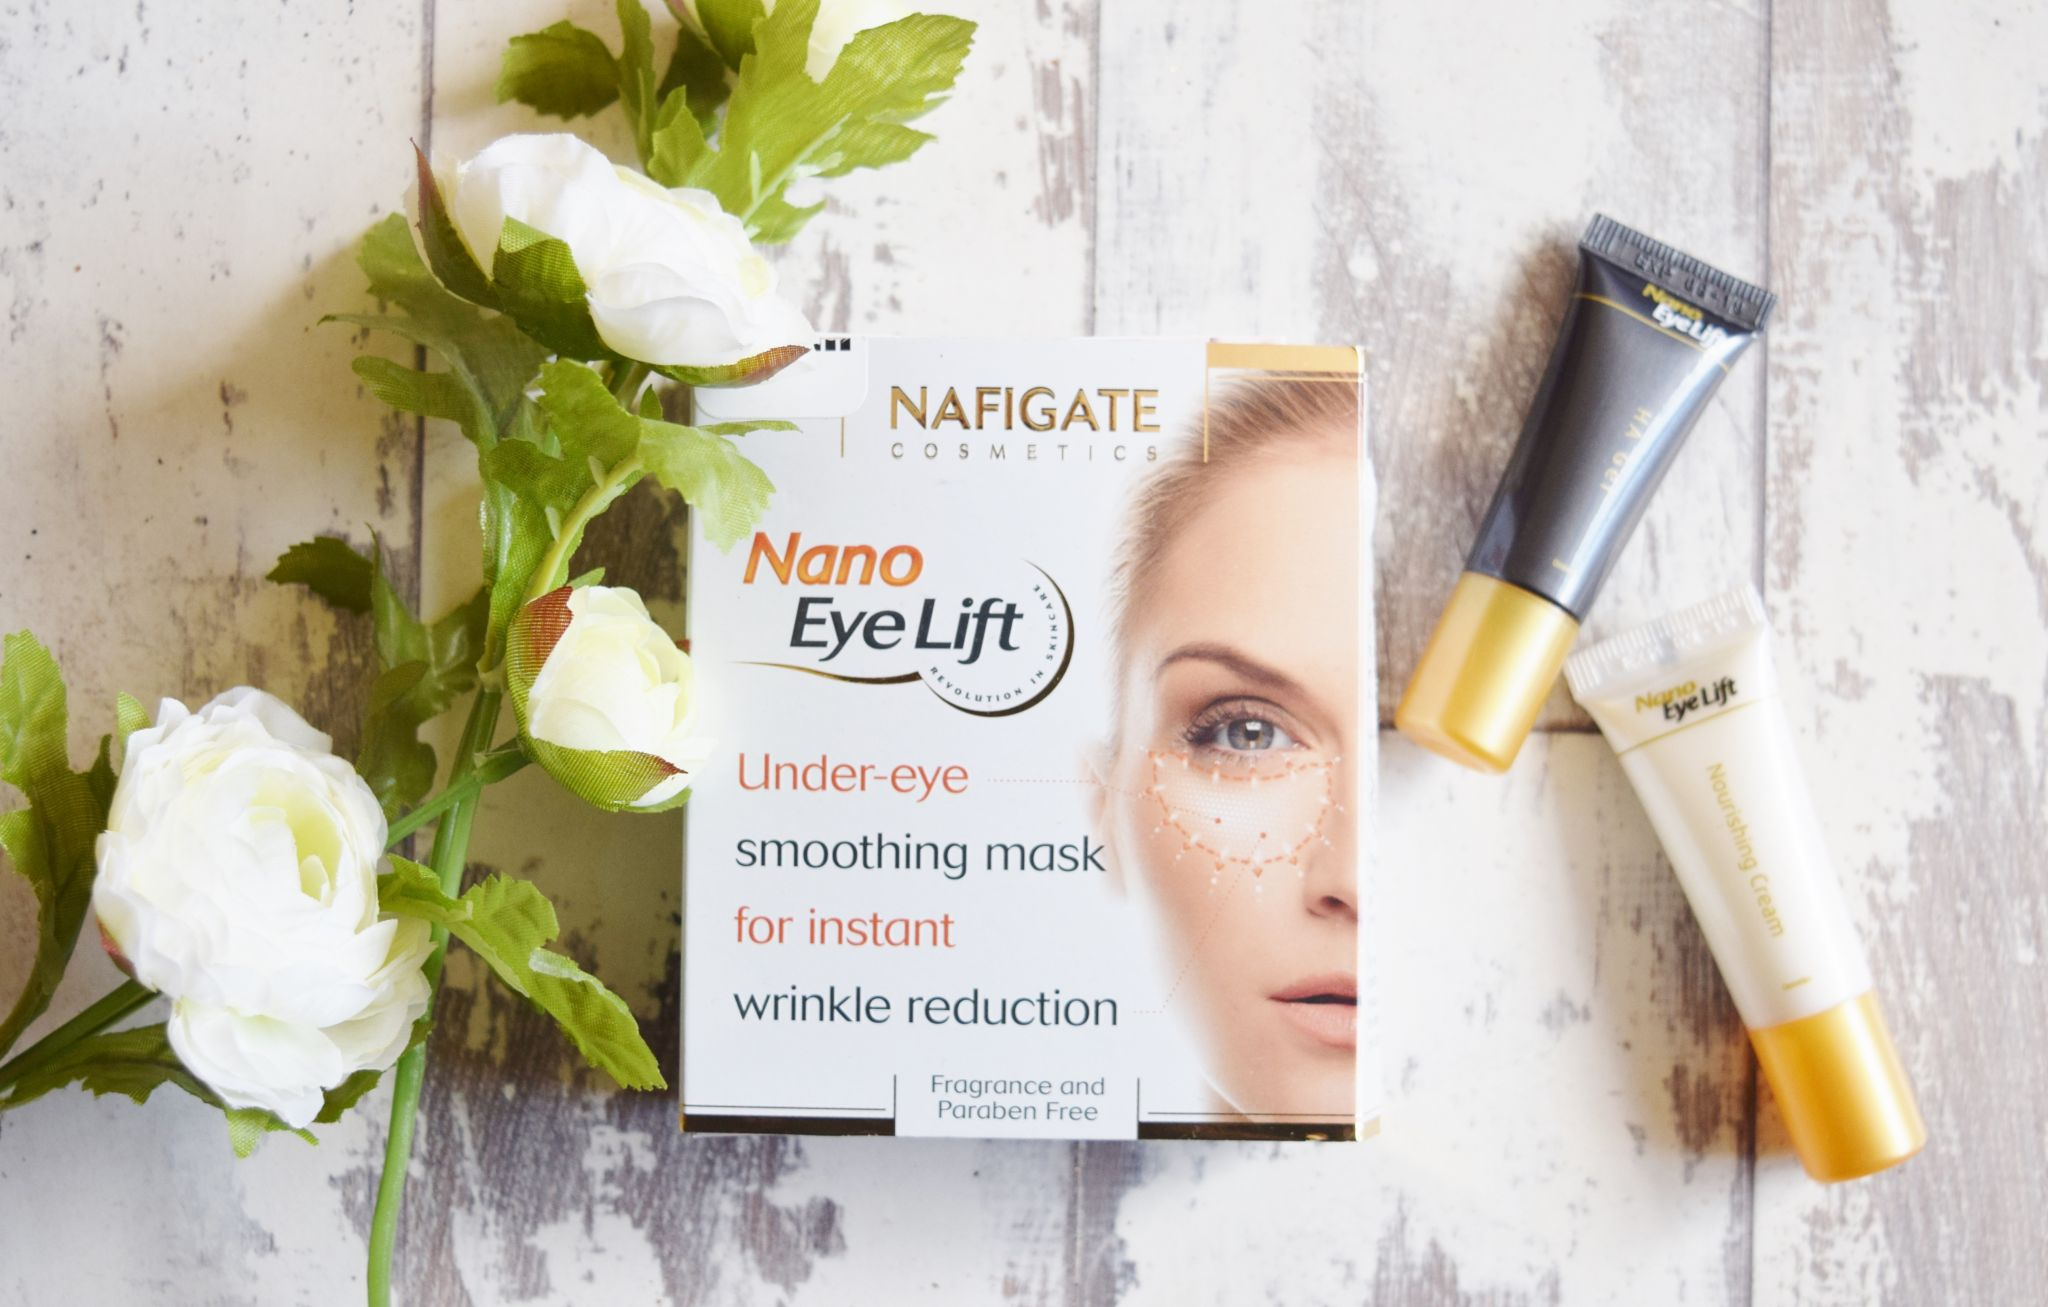 nafigate cosmetics nano eye lift